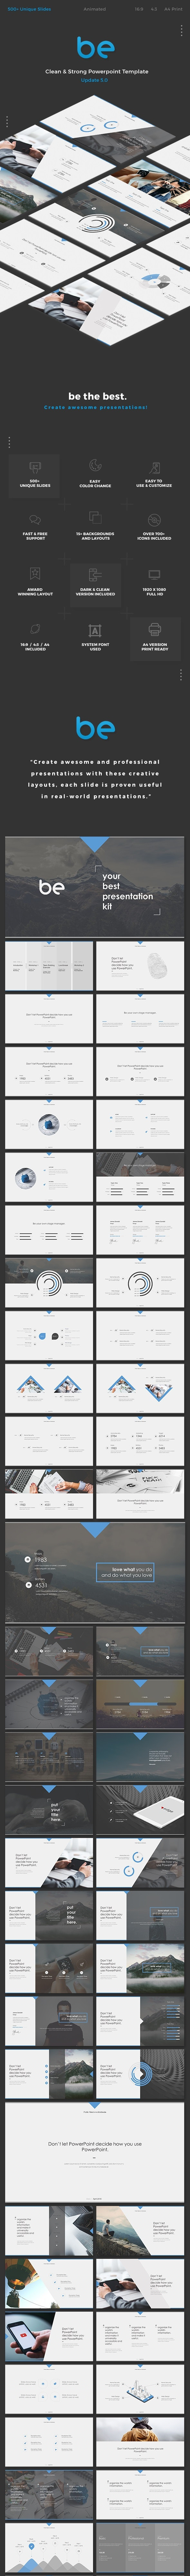 be Powerpoint - PowerPoint Templates Presentation Templates